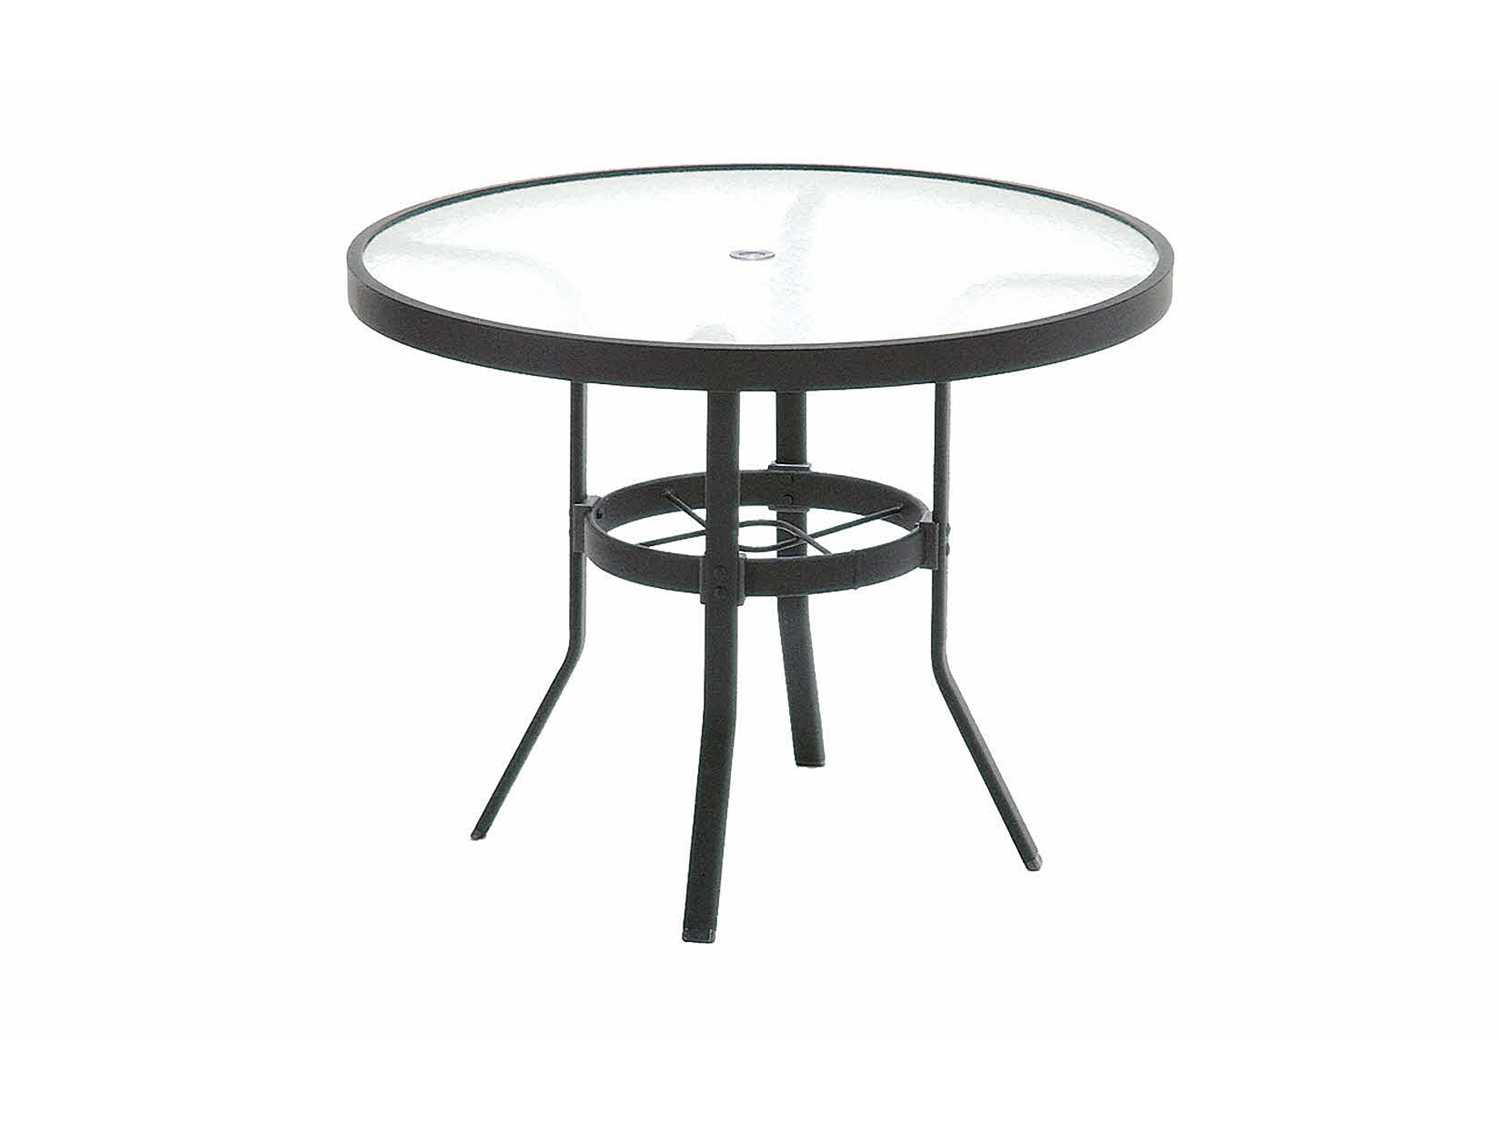 Winston Obscure Glass Aluminum 36 Round KD Cafe Table